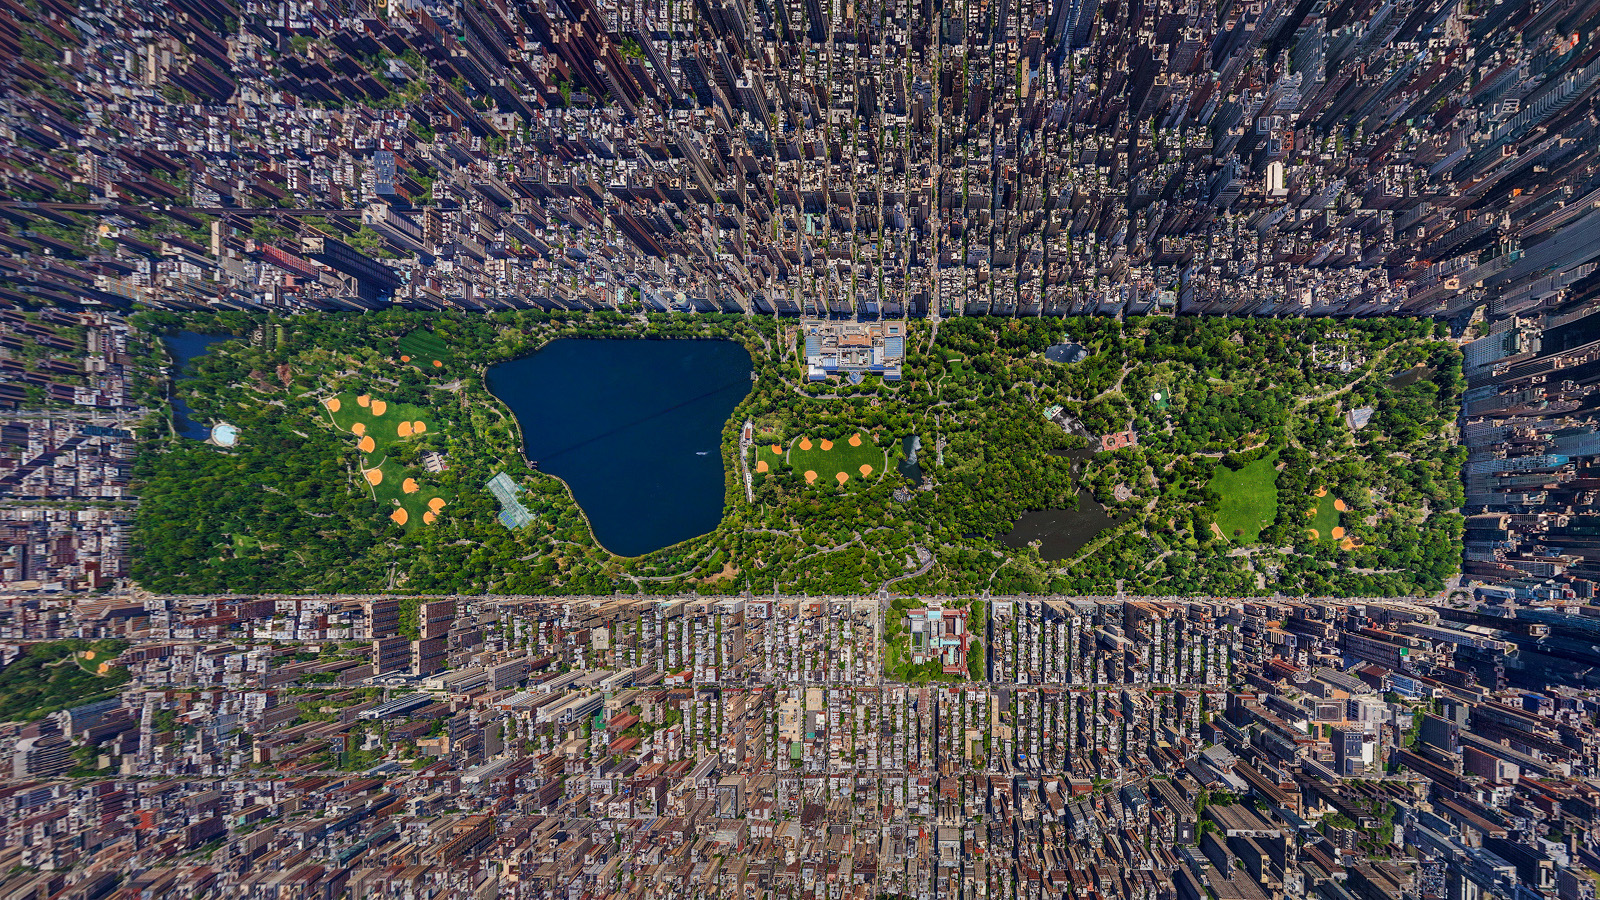 Central park, new york city opened in 1857, central park spans 315 hectares of city-owned land